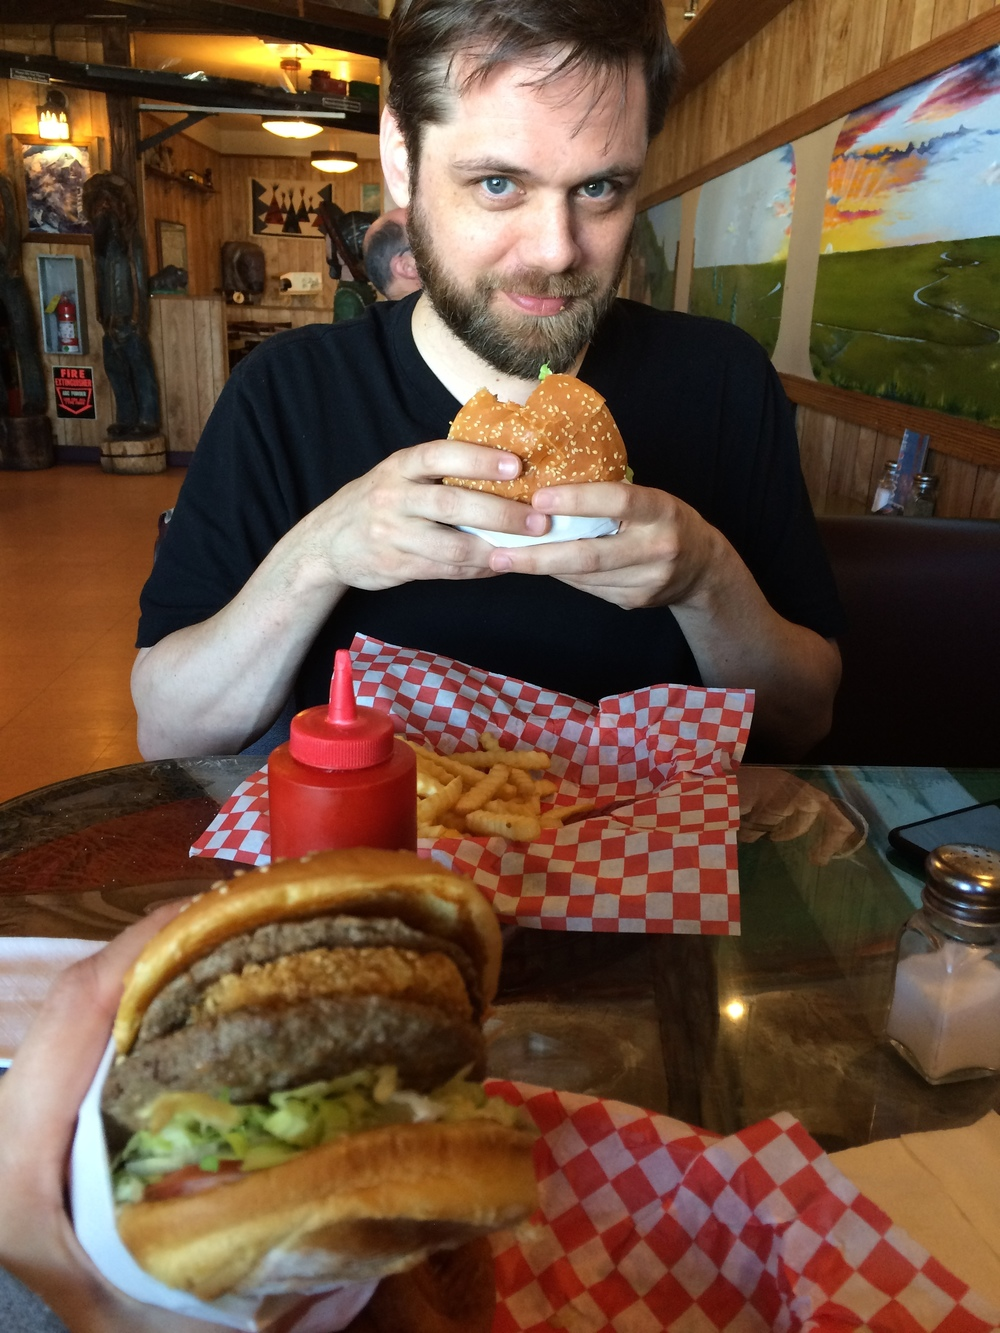 My beloved and I stopped at my favorite burger joint up north during a quick supply run. That IS in fact a hash brown in my burger. That way I don't need a side of fries.